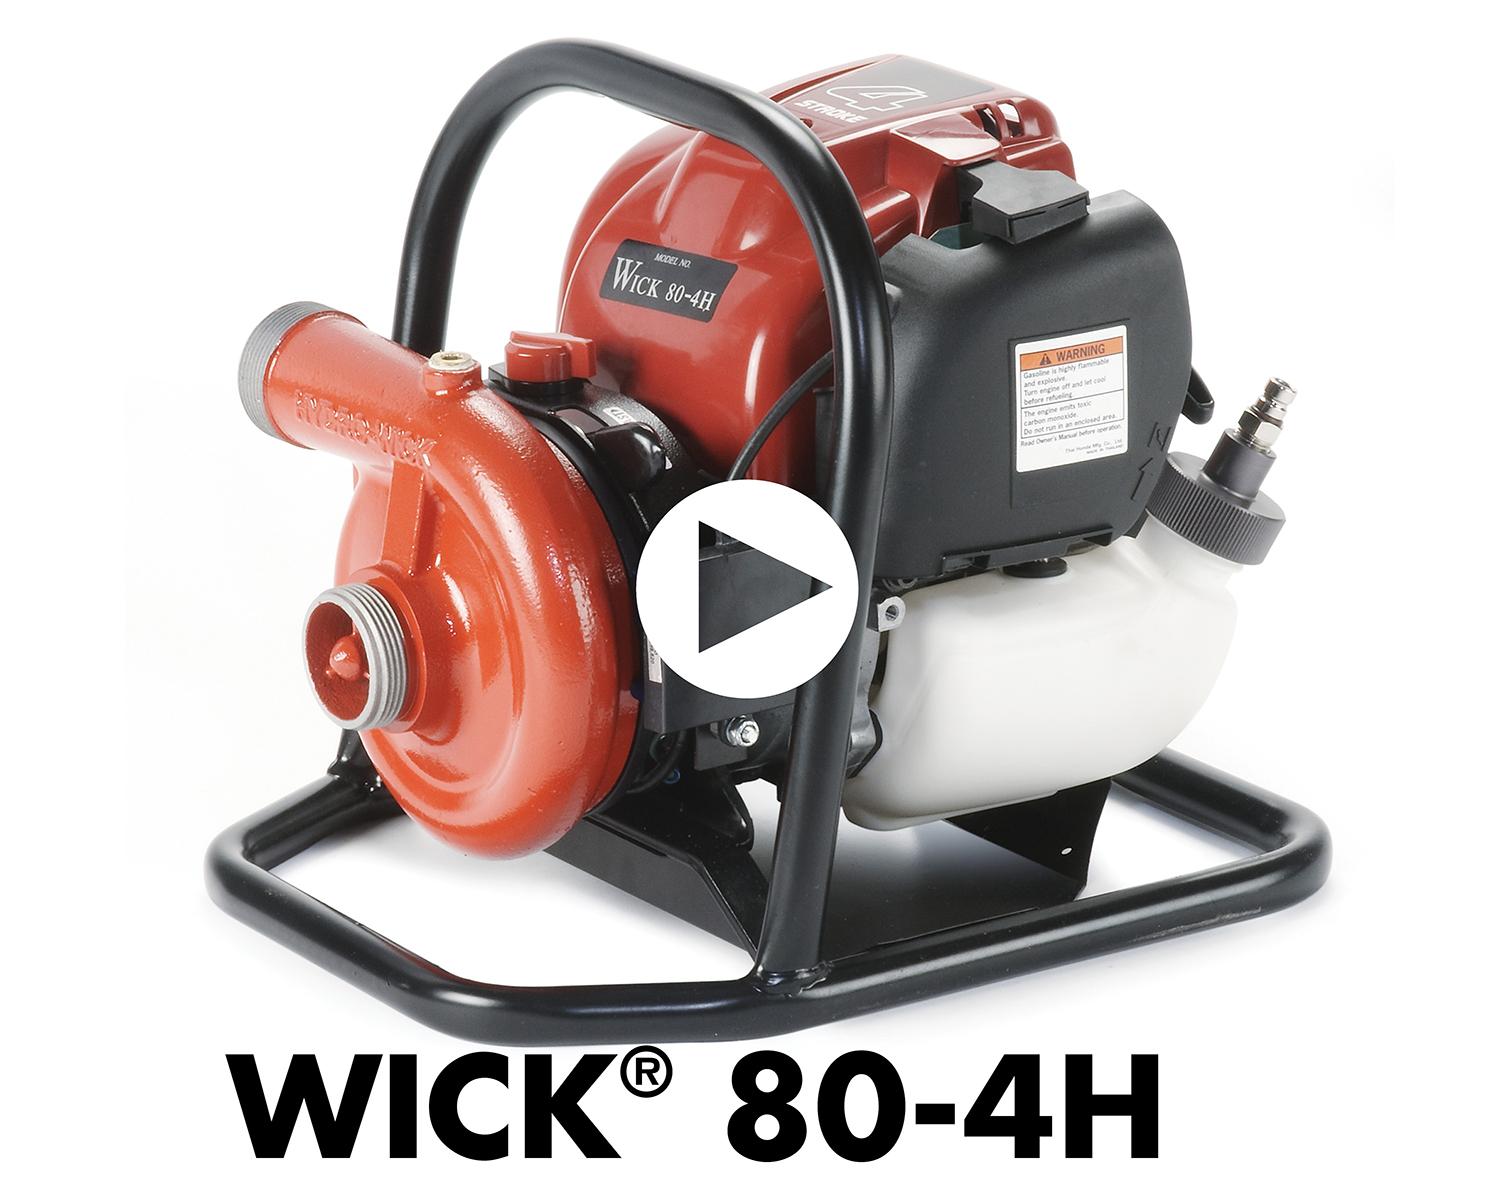 Portable Fire Pump Wick 80-4H